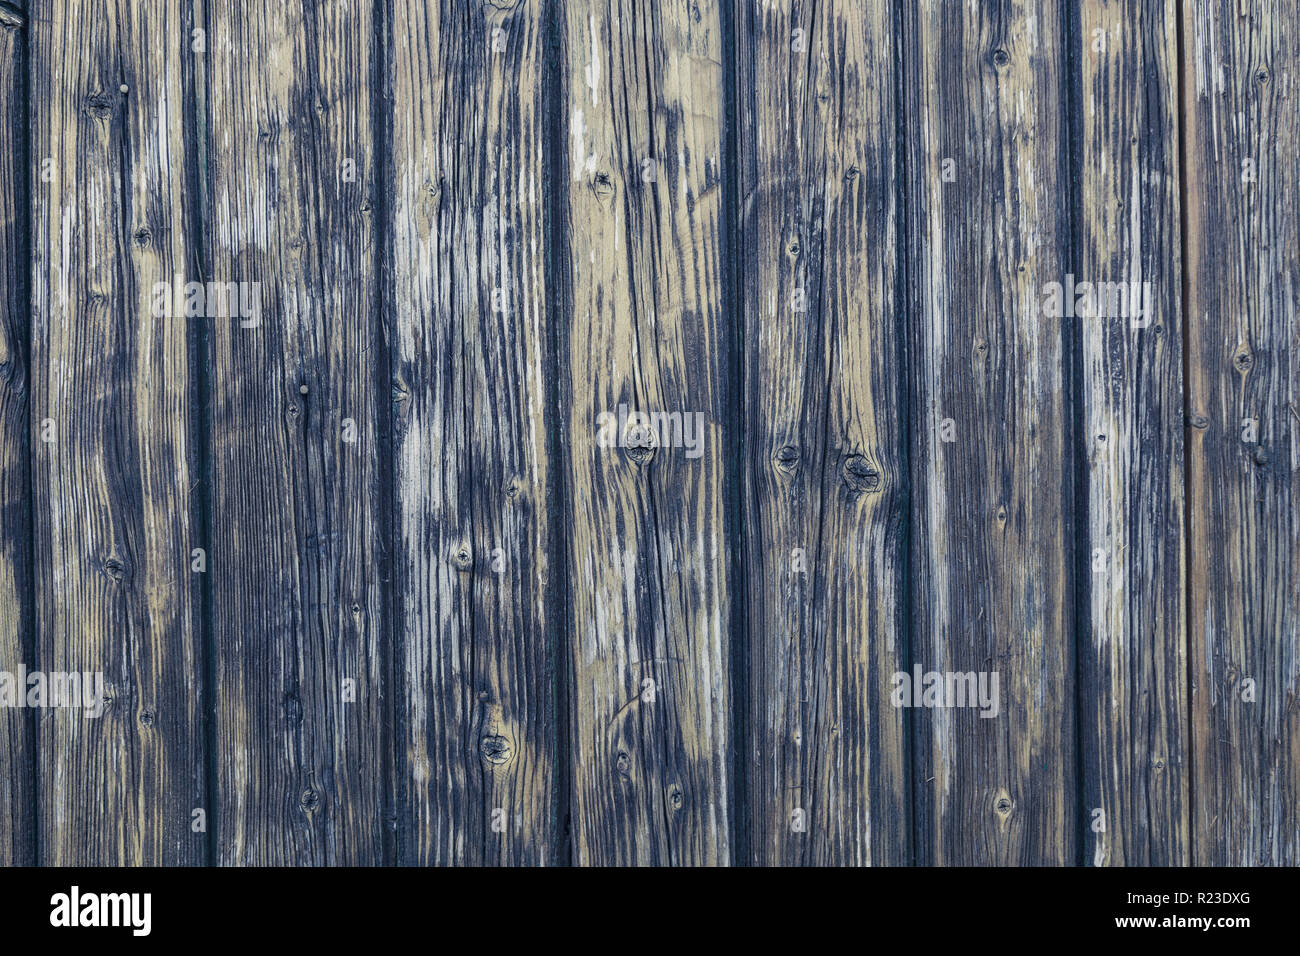 Vintage wood fond structure in used look. - Stock Image